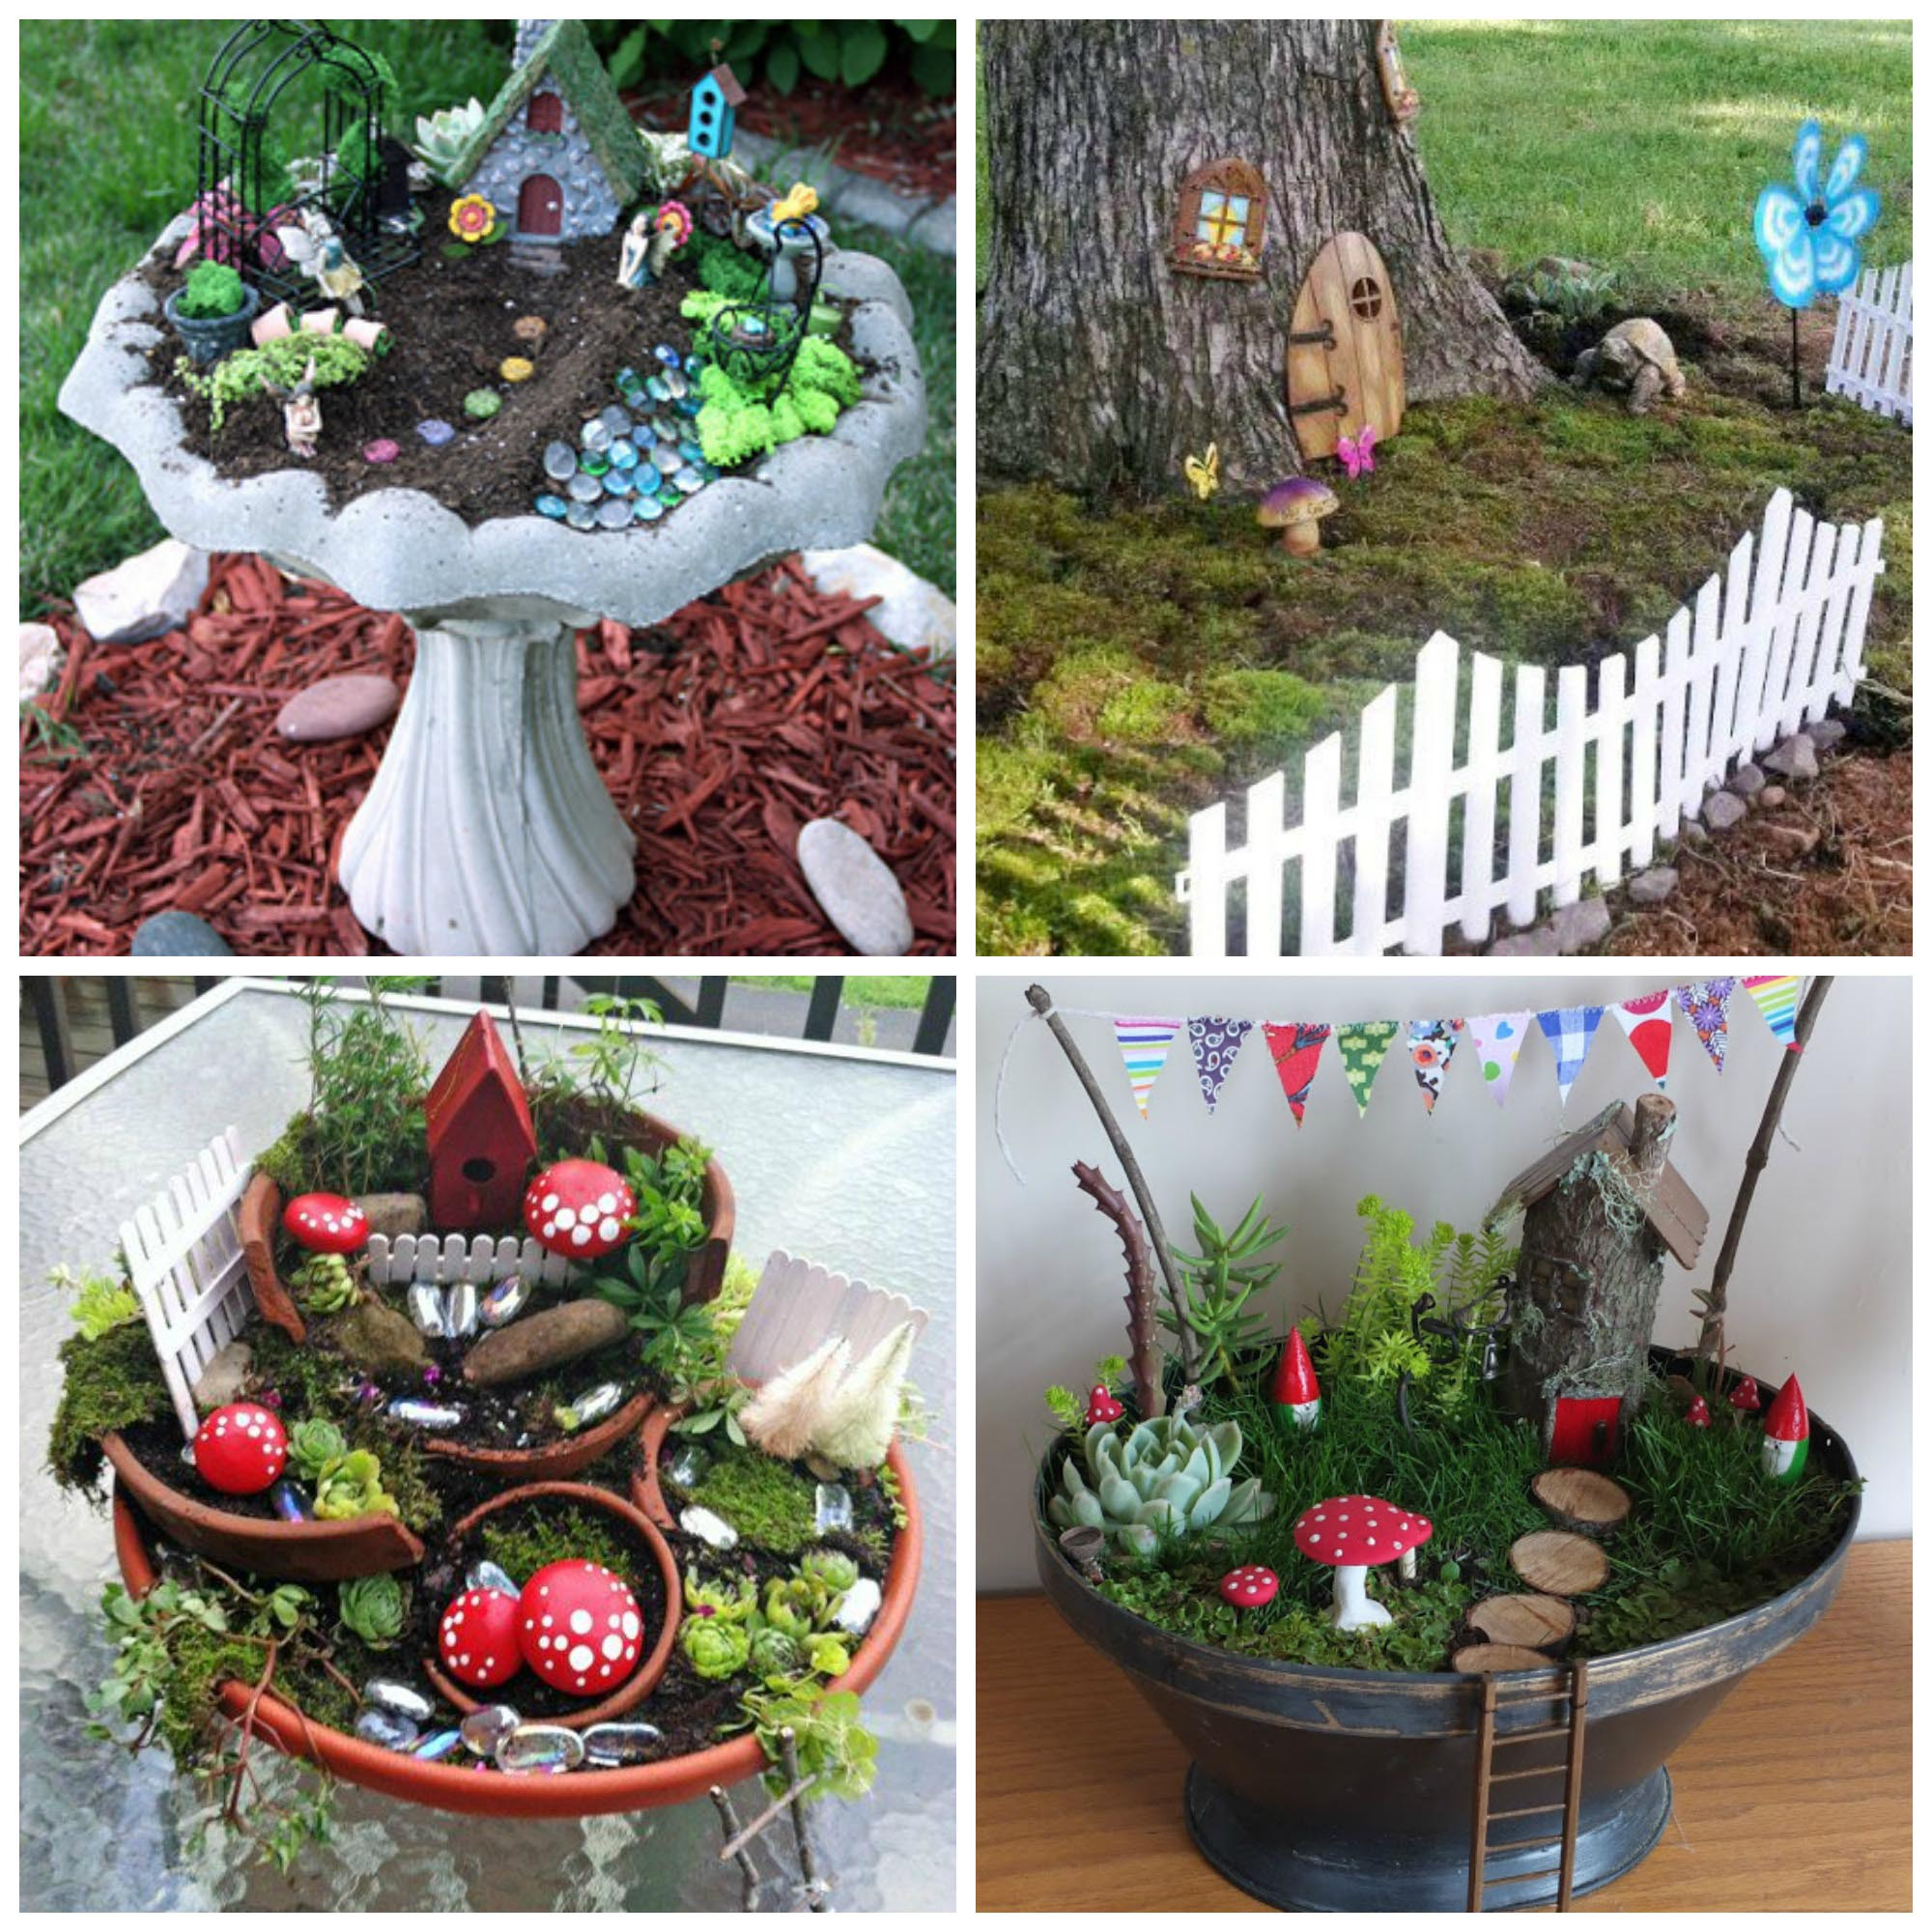 DIY Fairy Garden Crafts